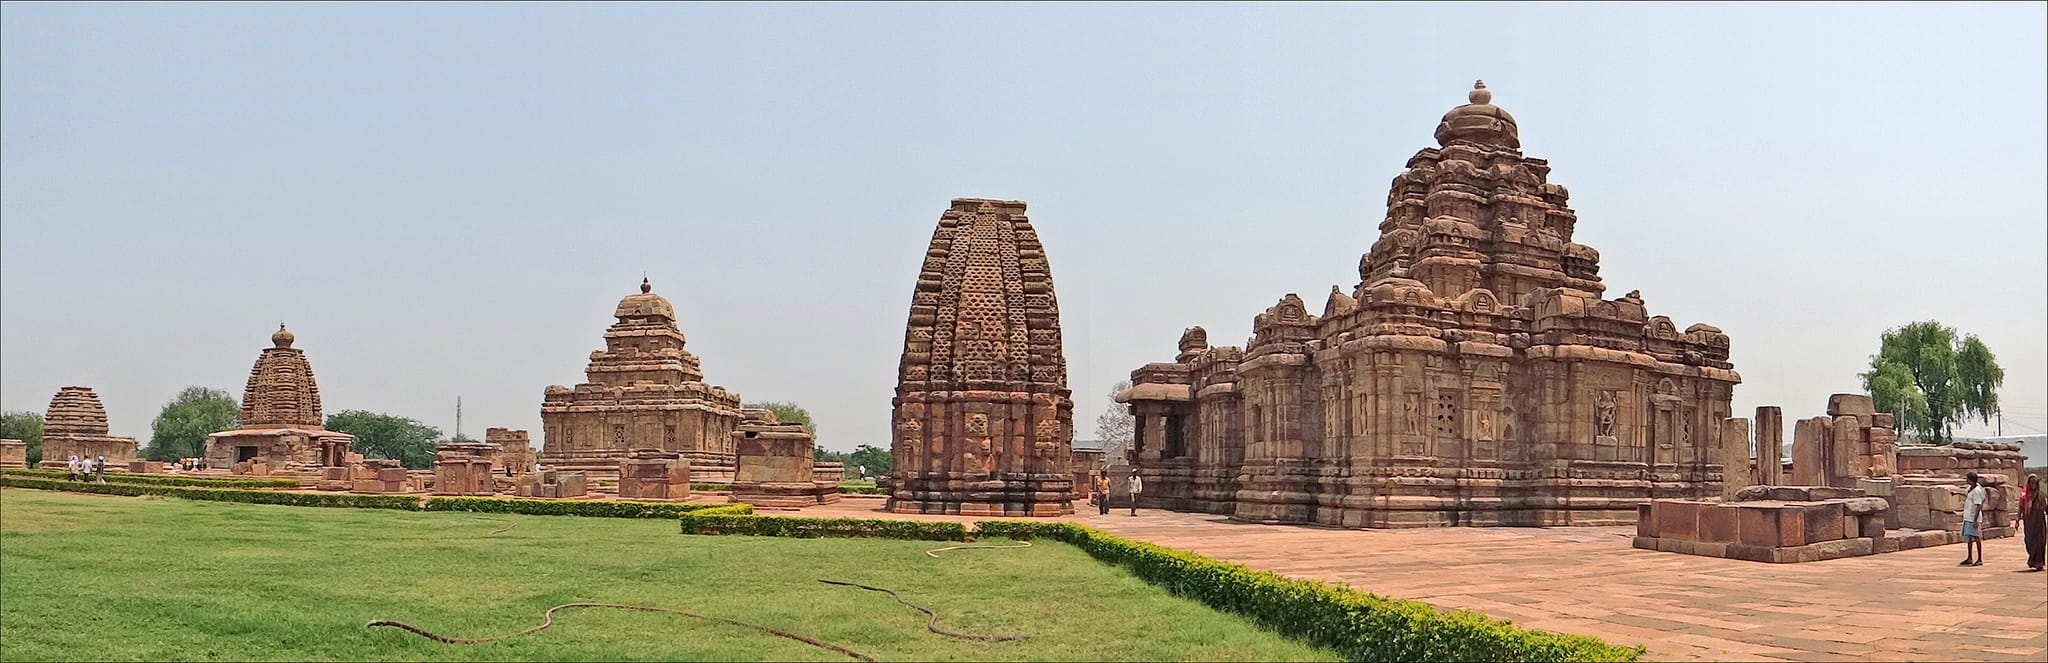 Hire a car and driver in Pattadakal